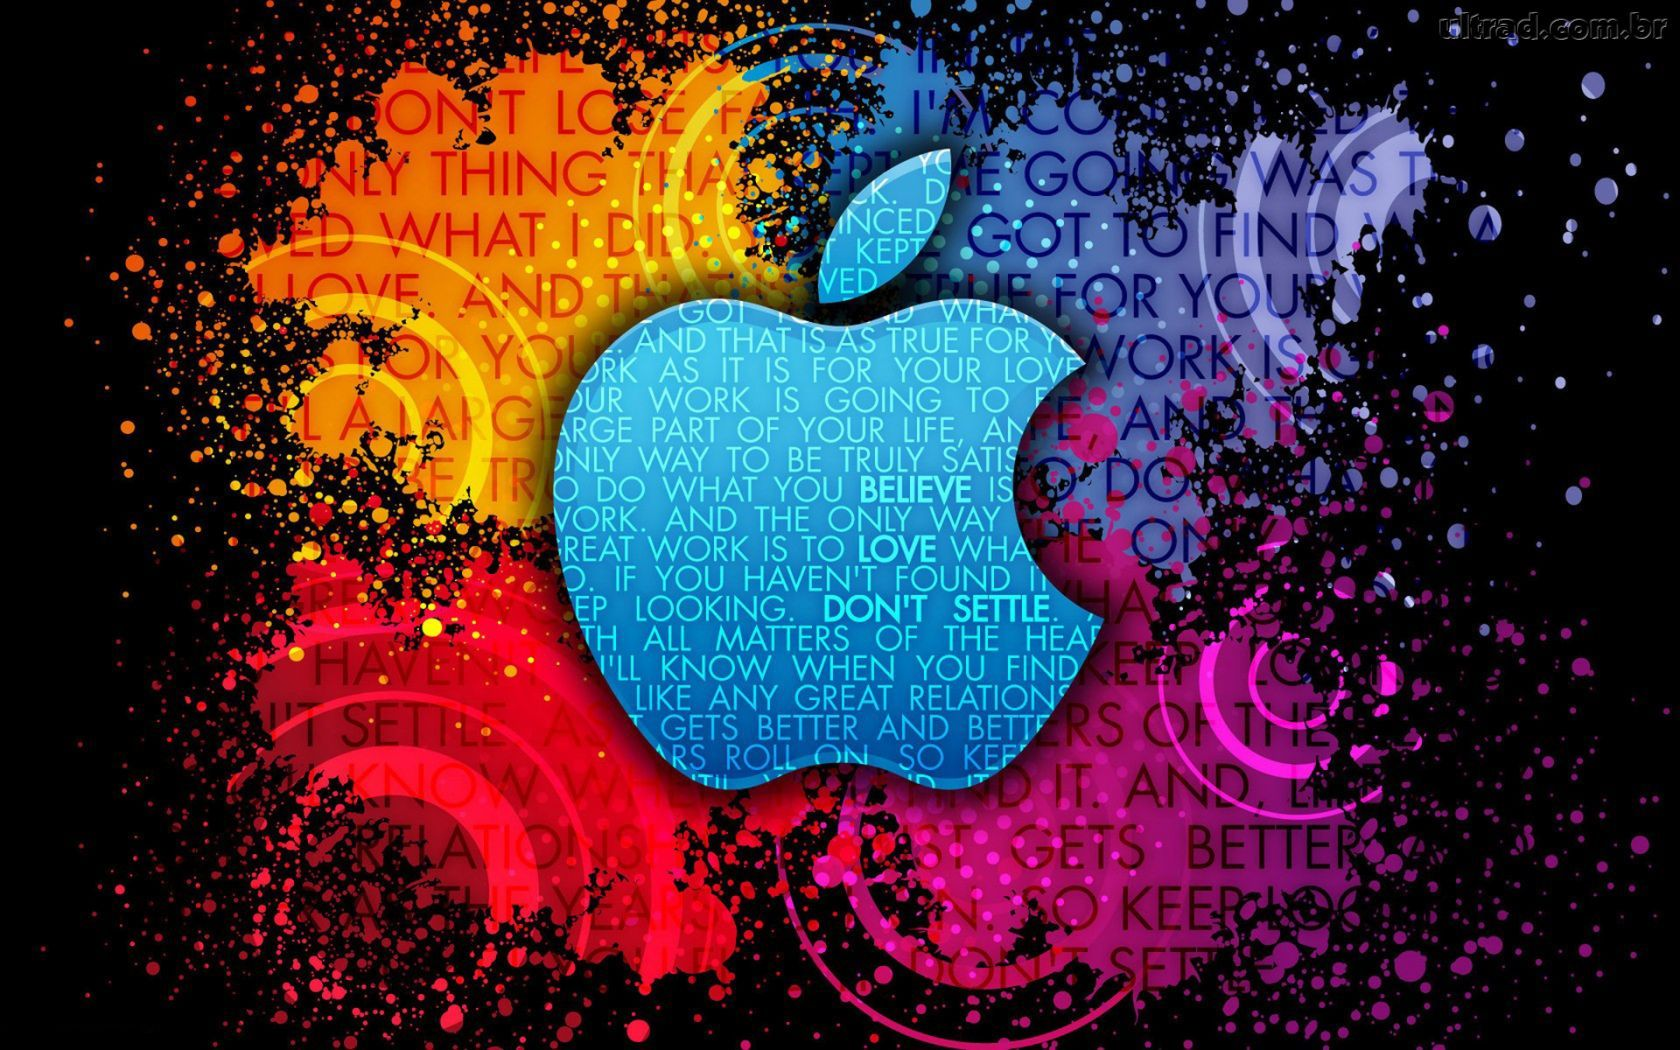 Embrace Your Crazy Graphic Wallpaper Hd Apple Wallpapers Apple Logo Wallpaper Iphone